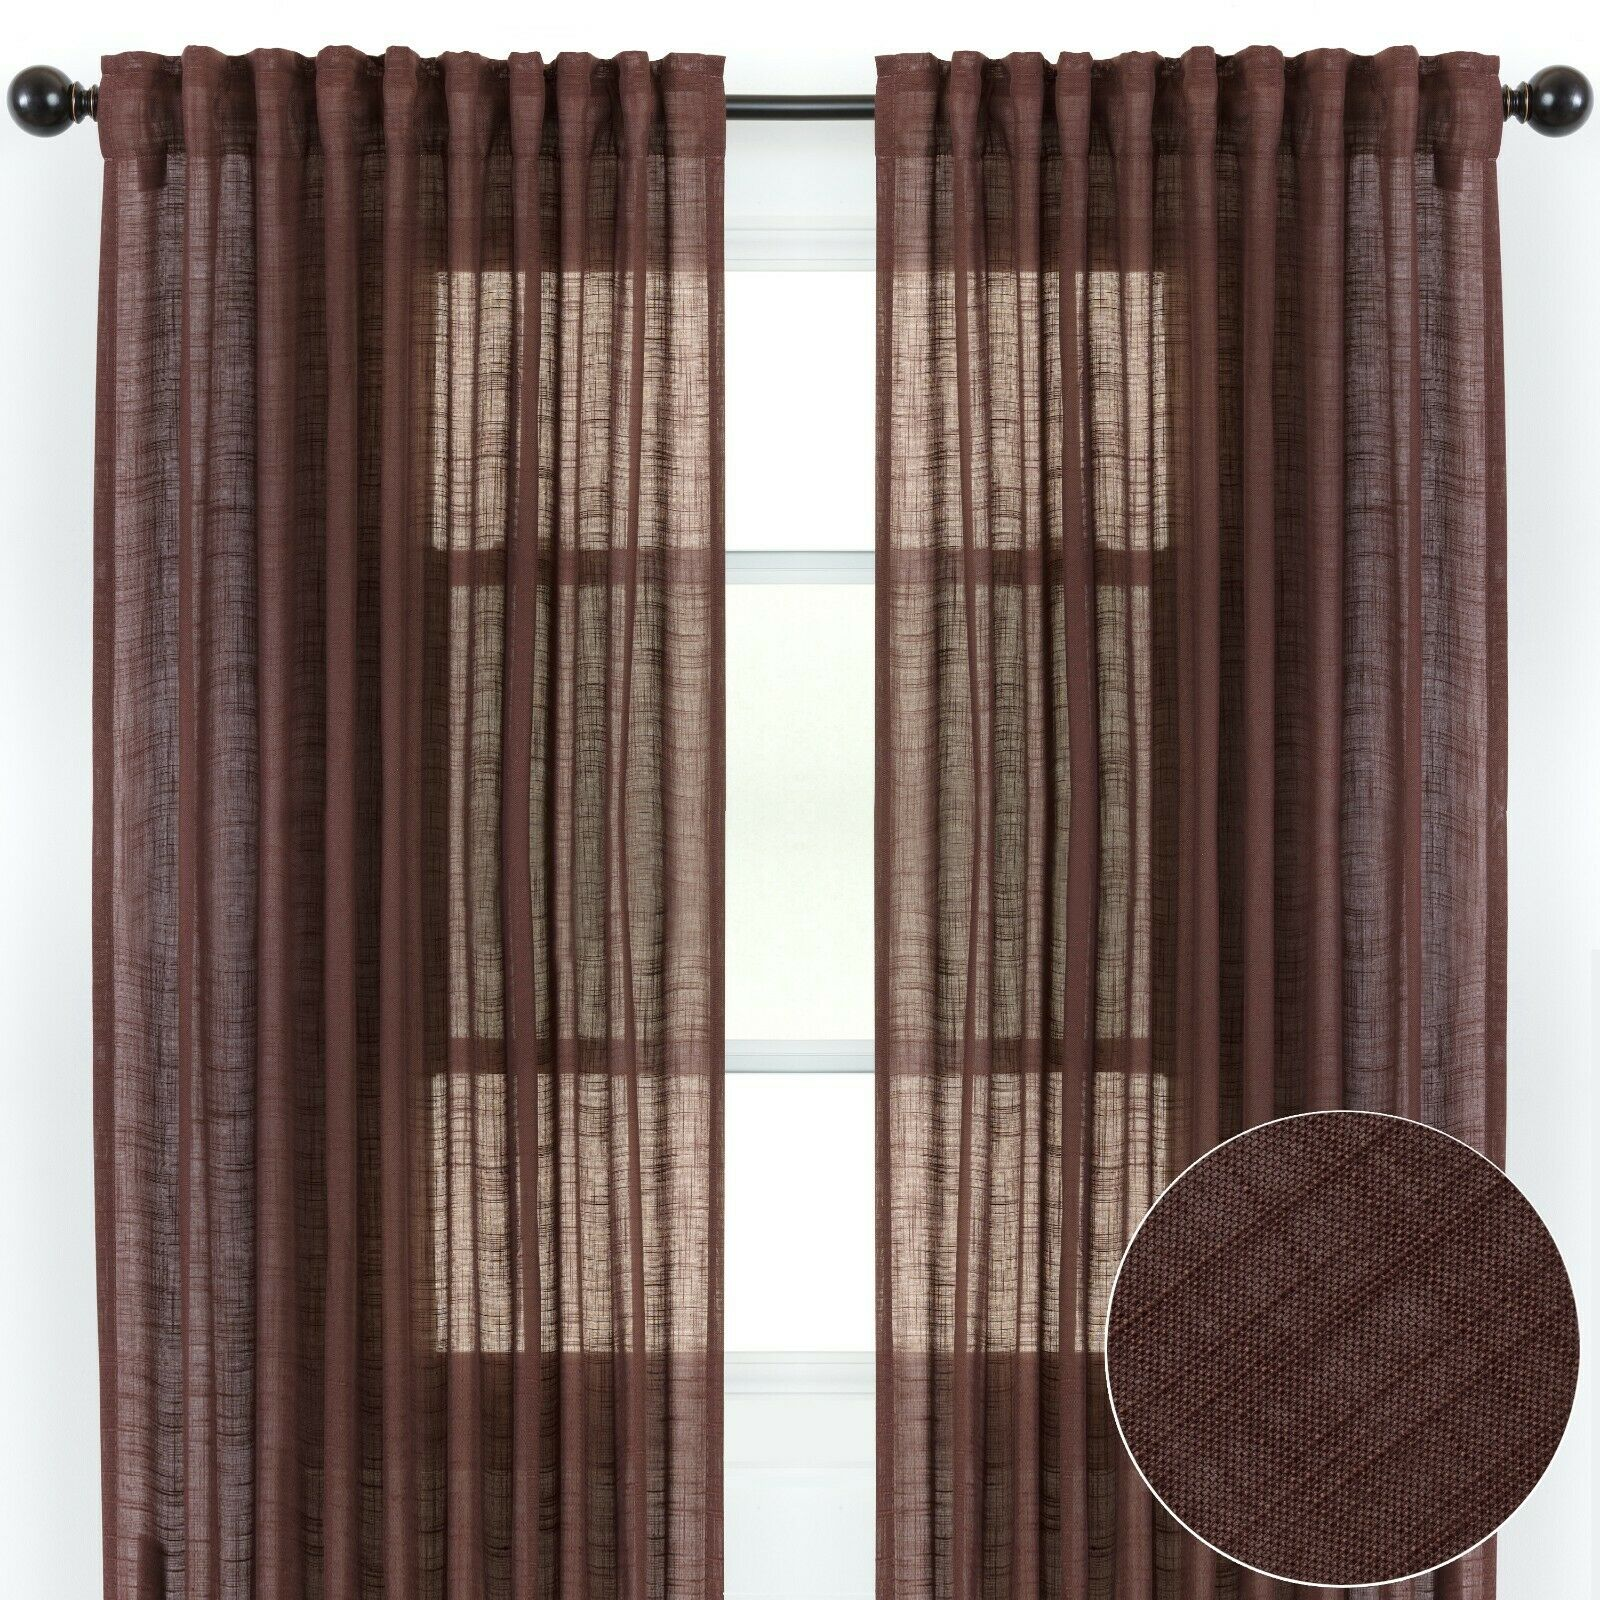 Home Decor Fmfunctex Black White Sheer Curtains For Living Room 54 Inches Long Print Semi Sheer Window Drapes For Bedroom Branch Tree Curtains For Bathroom Basement Kitchen Grommet Top Home Anztech Co Nz